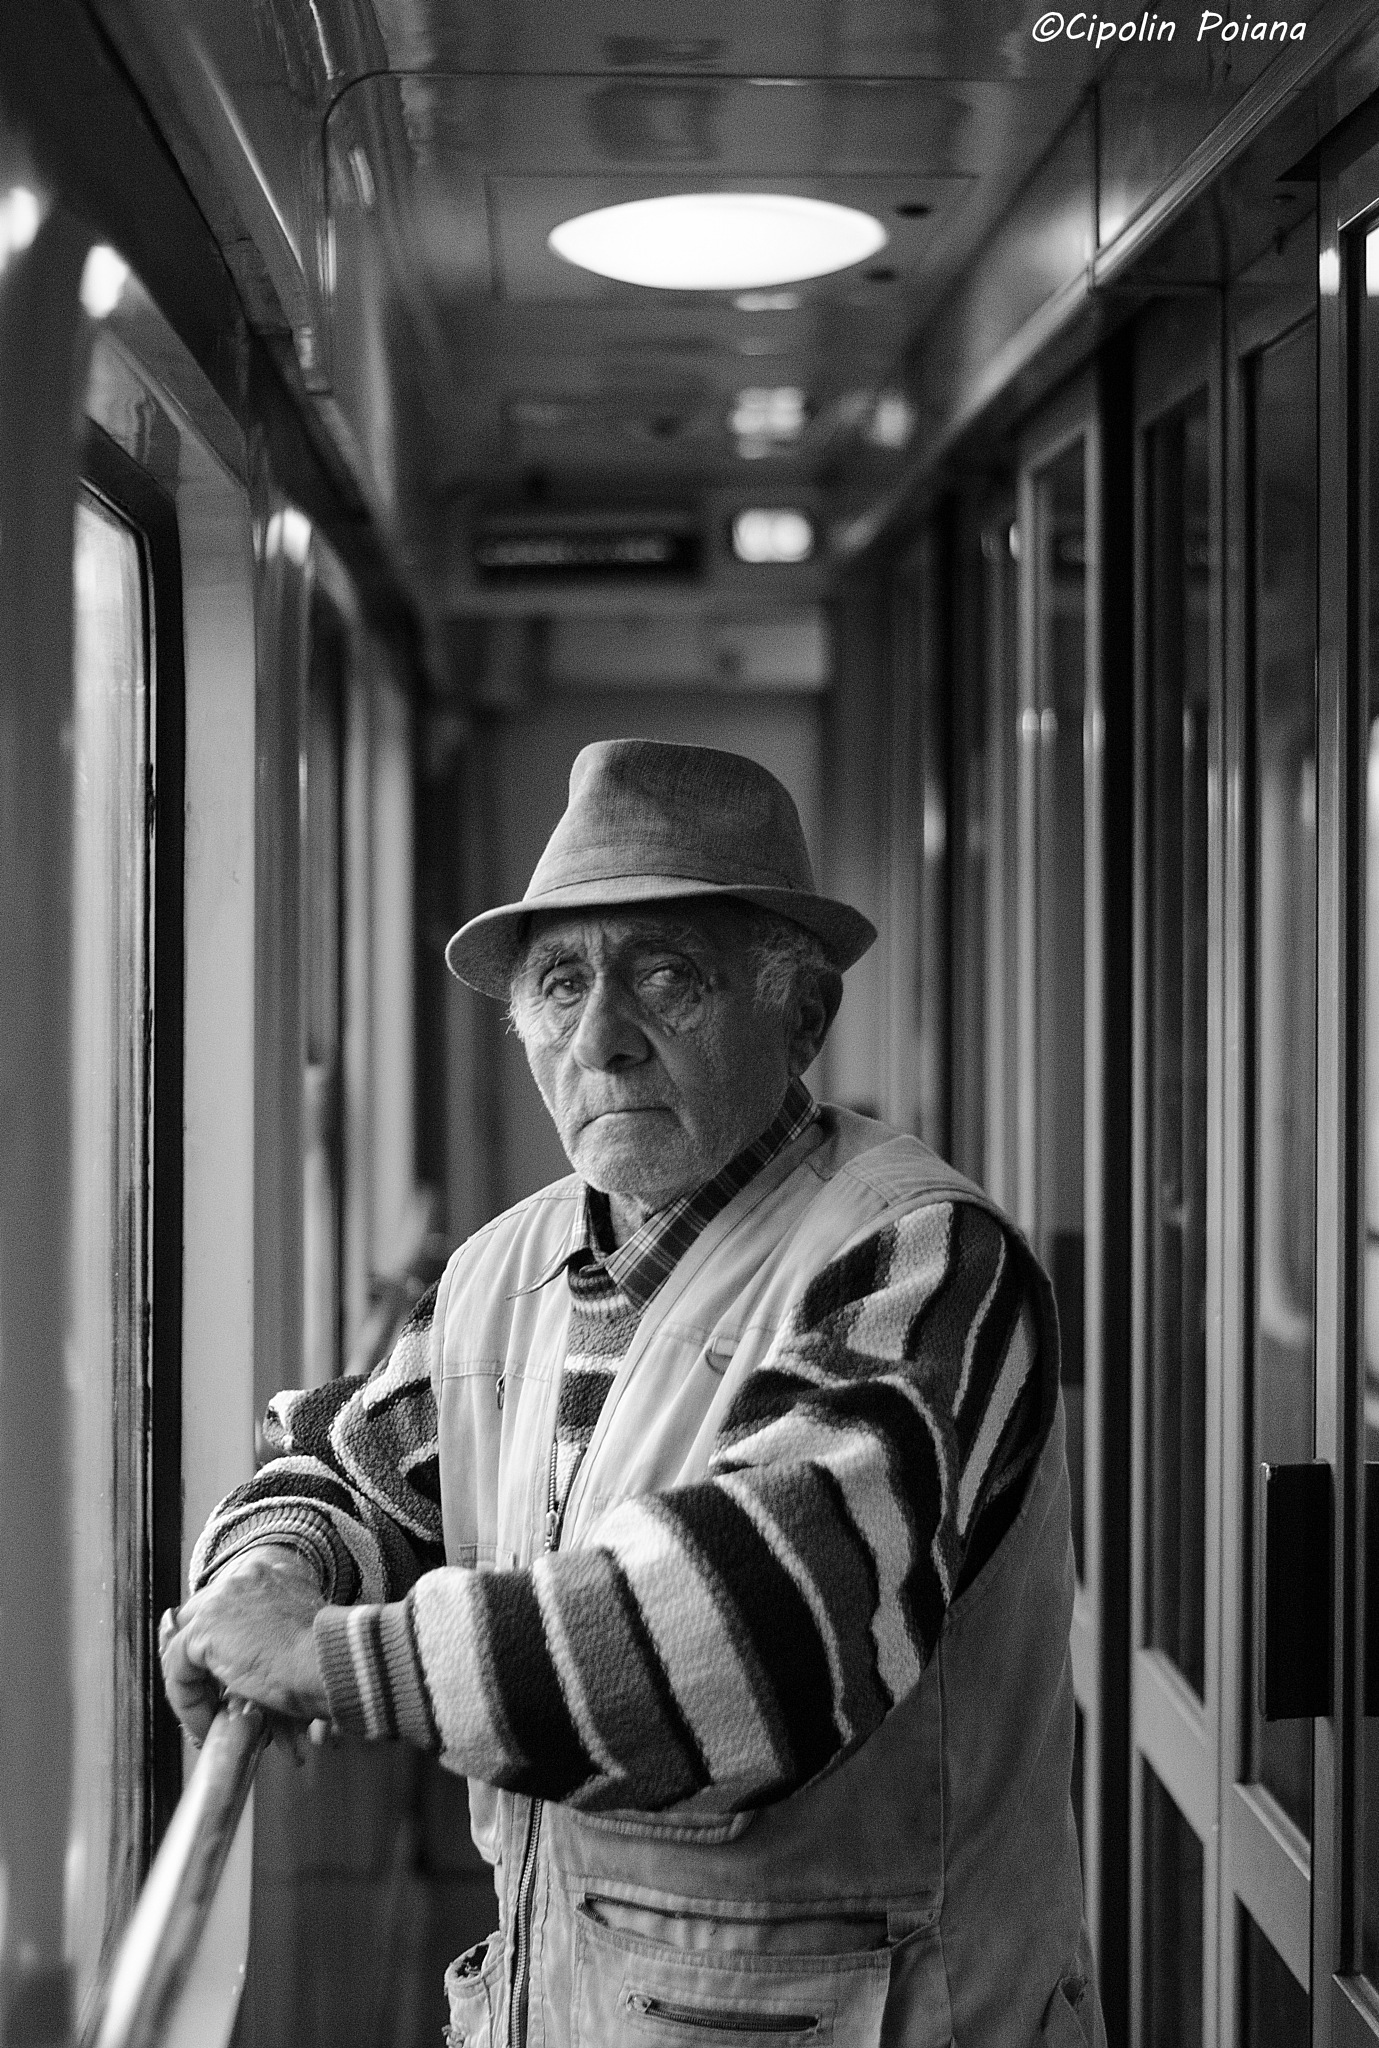 A old traveler with train by Poiana Cipolin